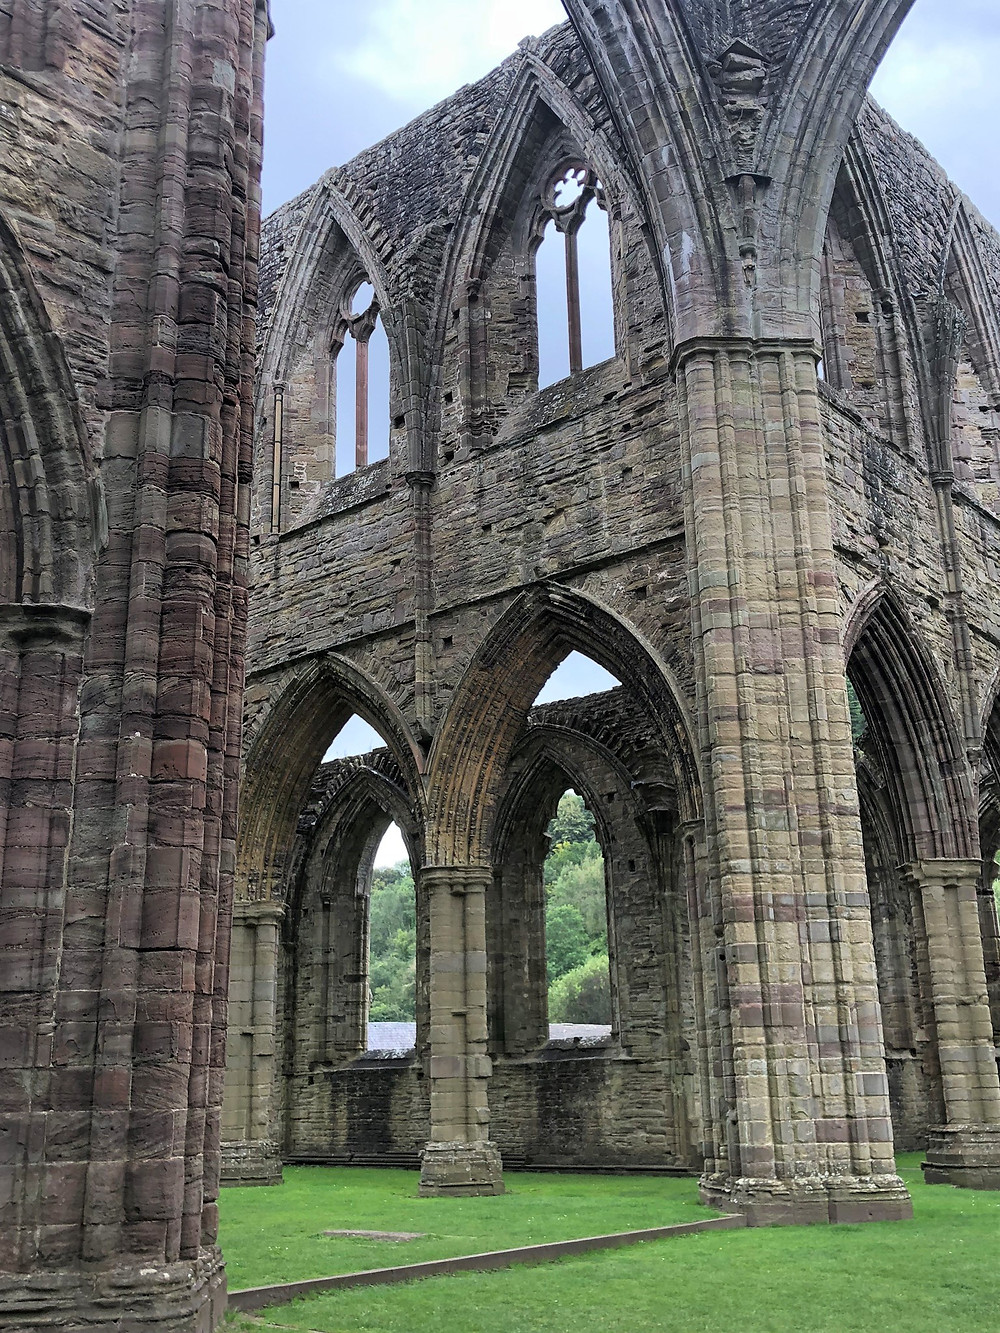 The intricate stonework on the pillars and arches in Tintern Abbey in Southern Wales